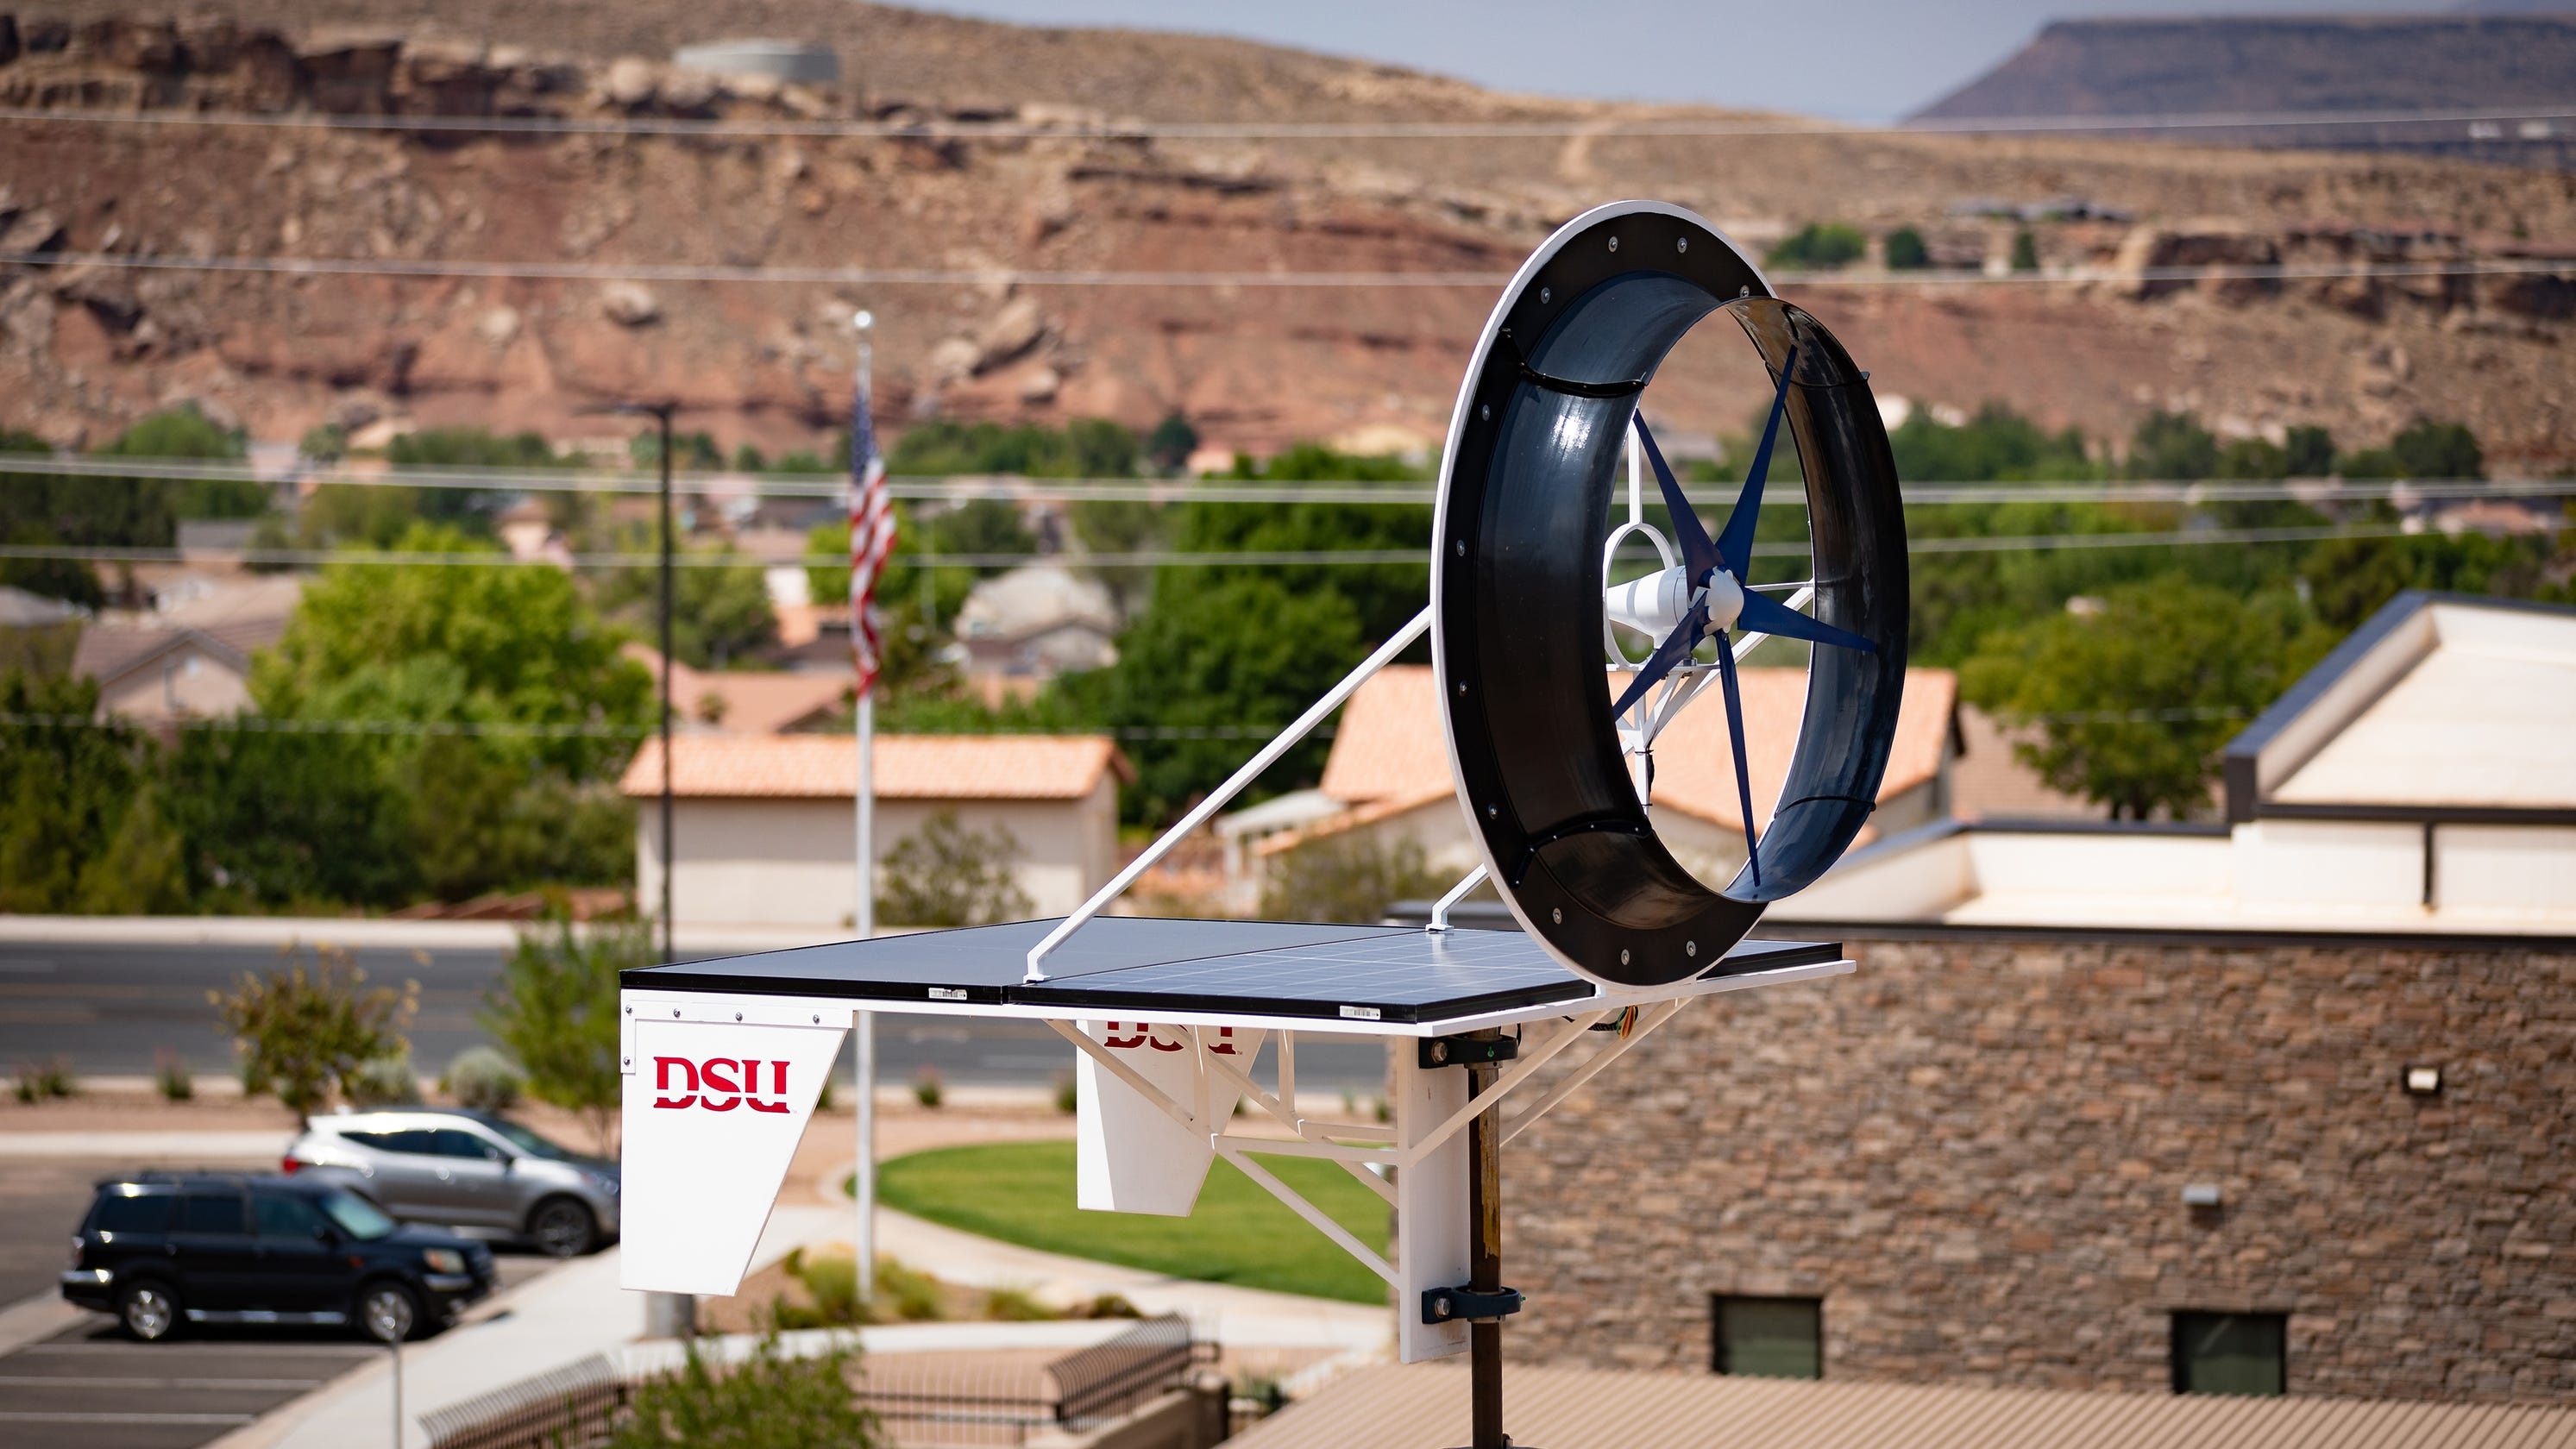 Solar-wind turbine developed at St. George university to help power southwest Utah